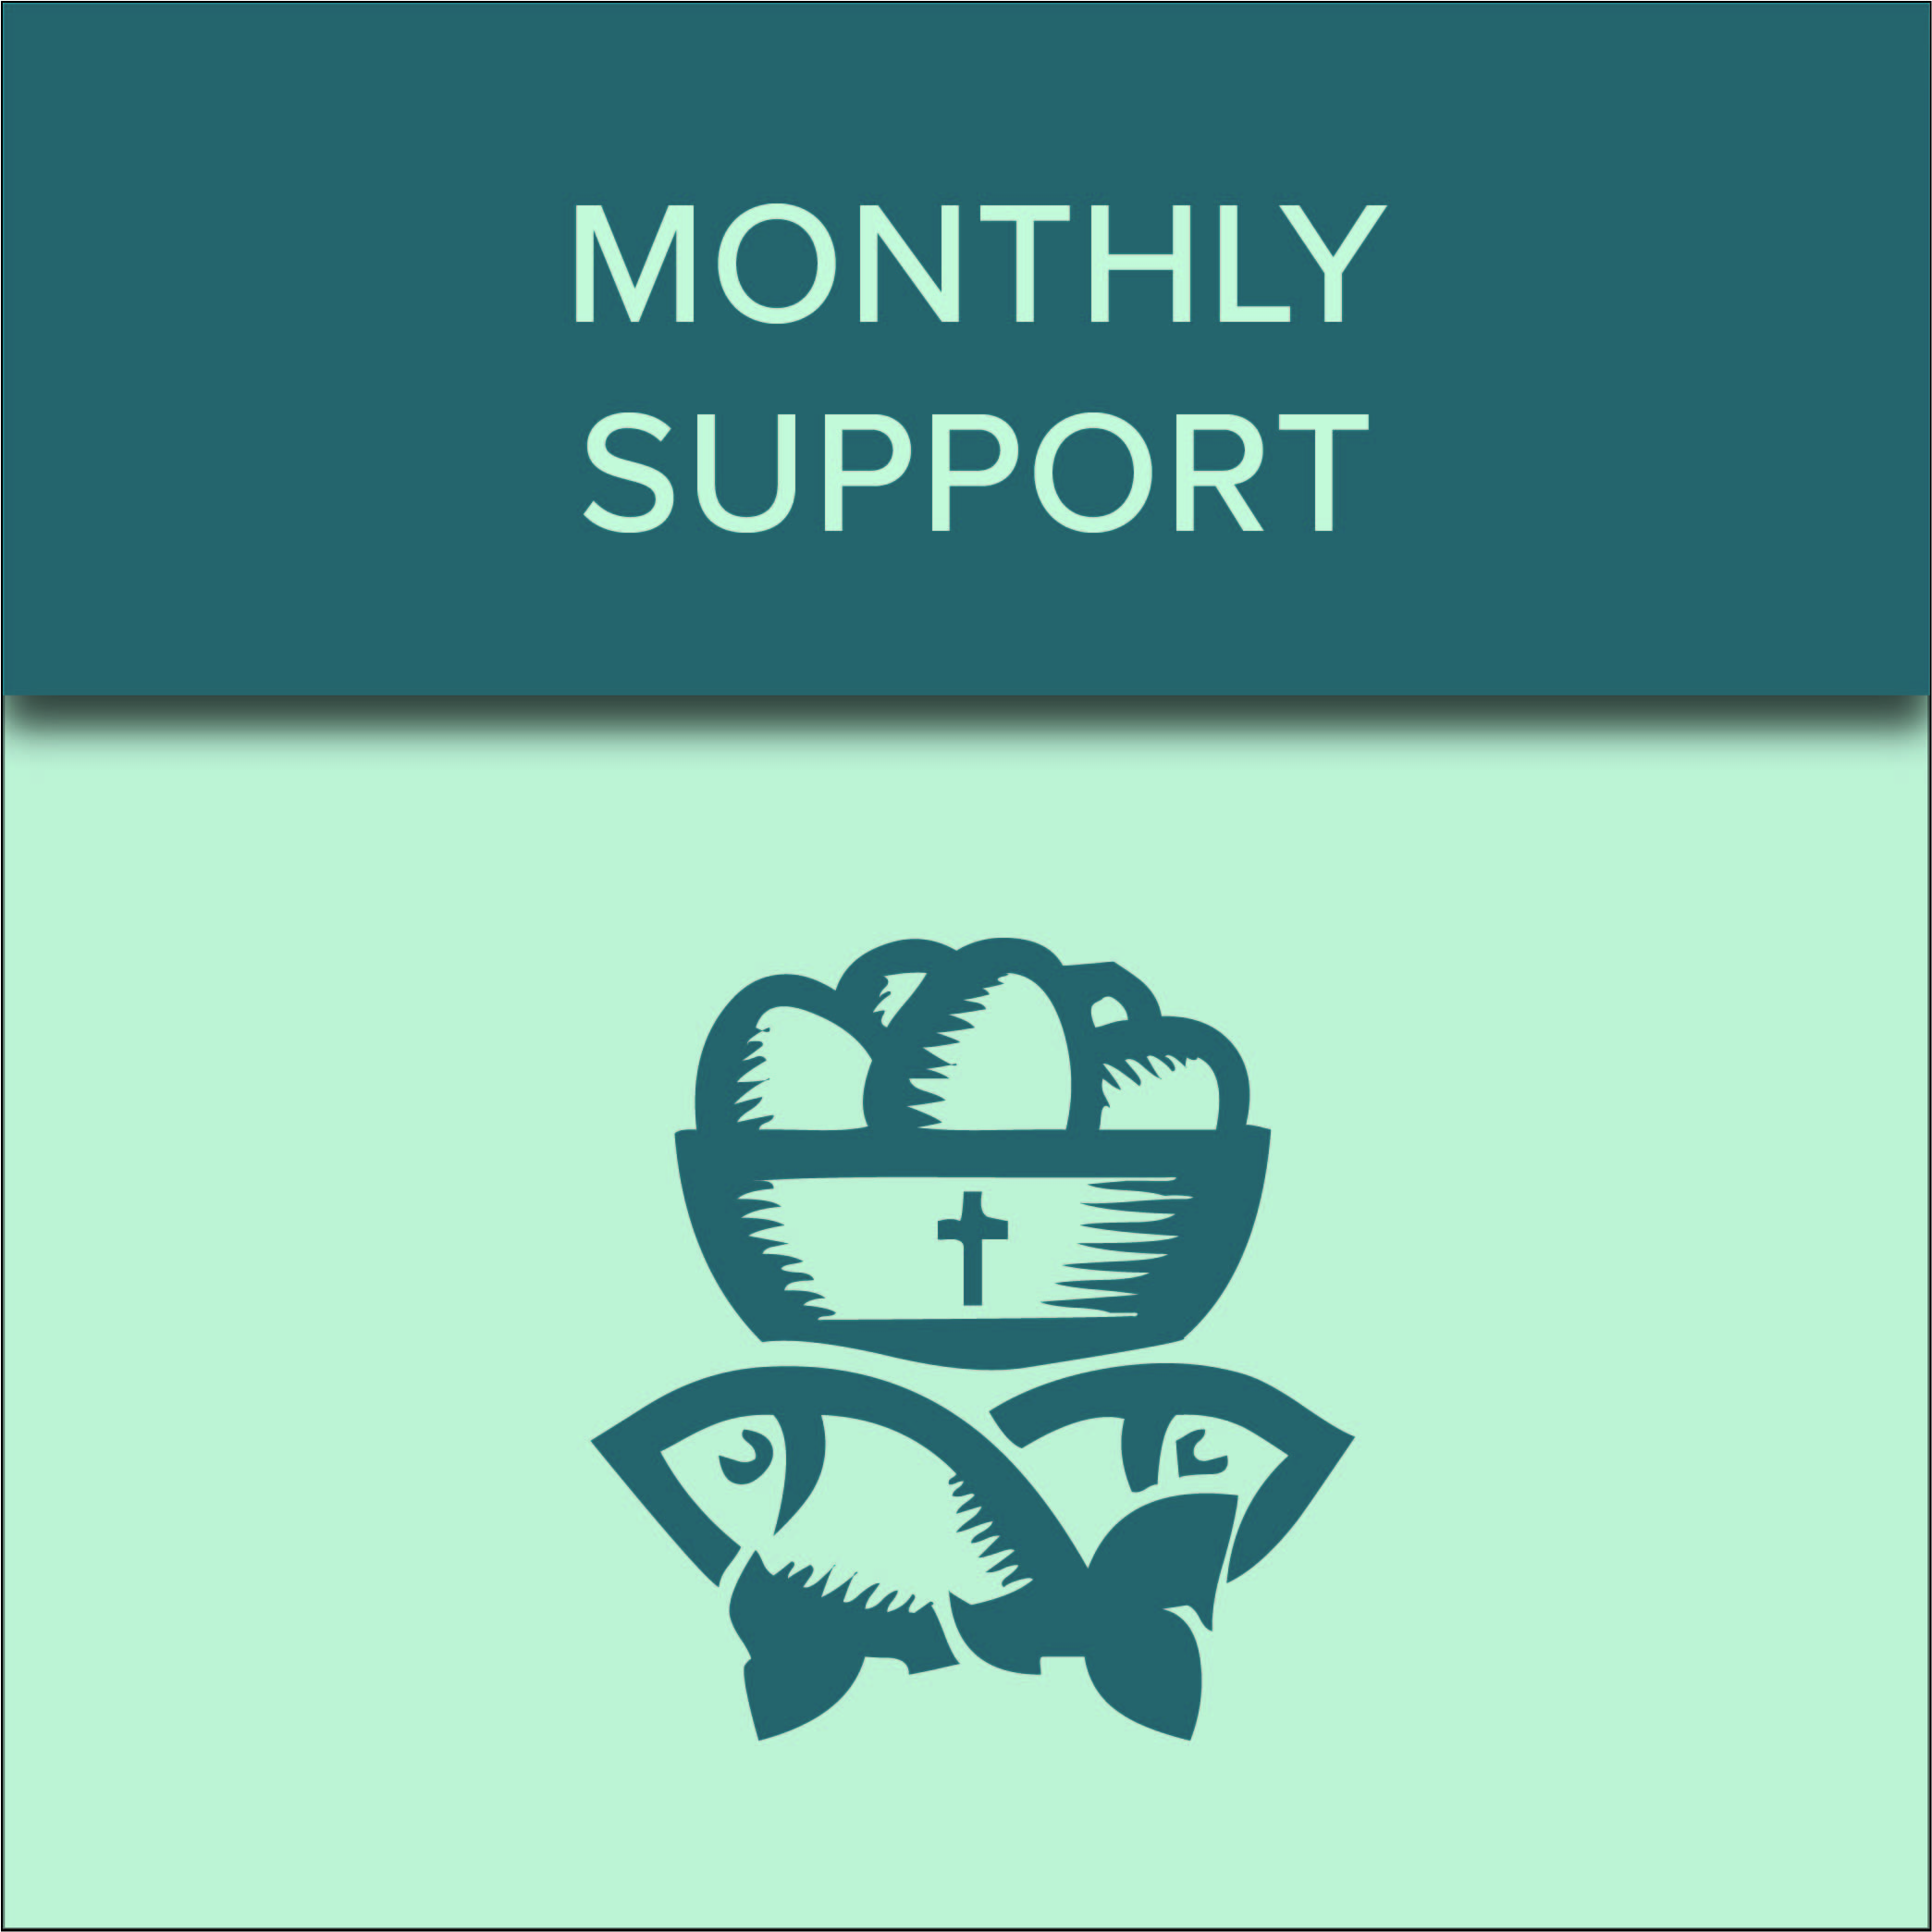 Monthly support starting at $10 and up